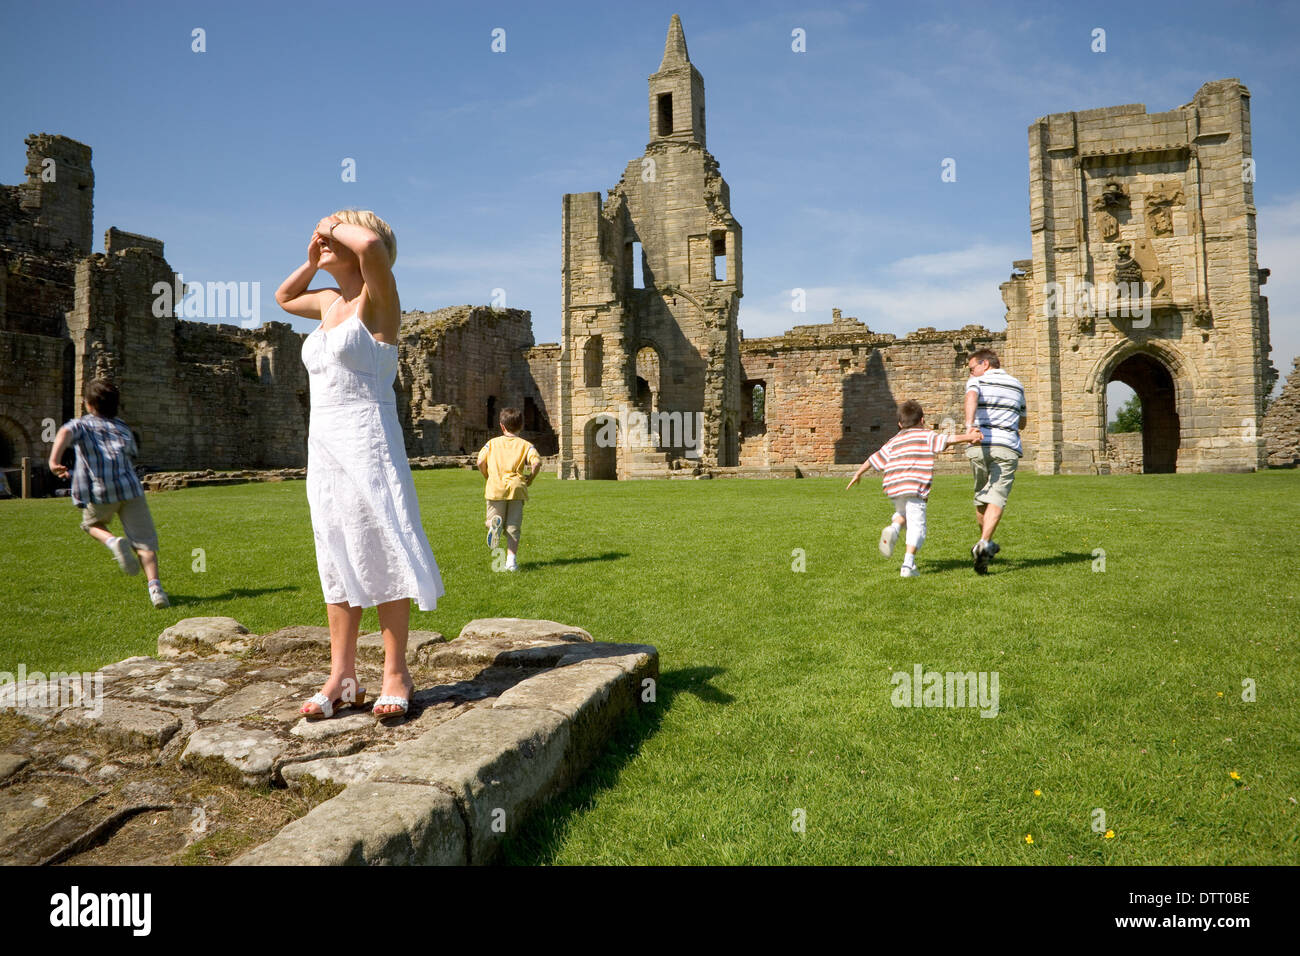 Family playing hide and seek at Warkworth Castle, Northumberland. - Stock Image